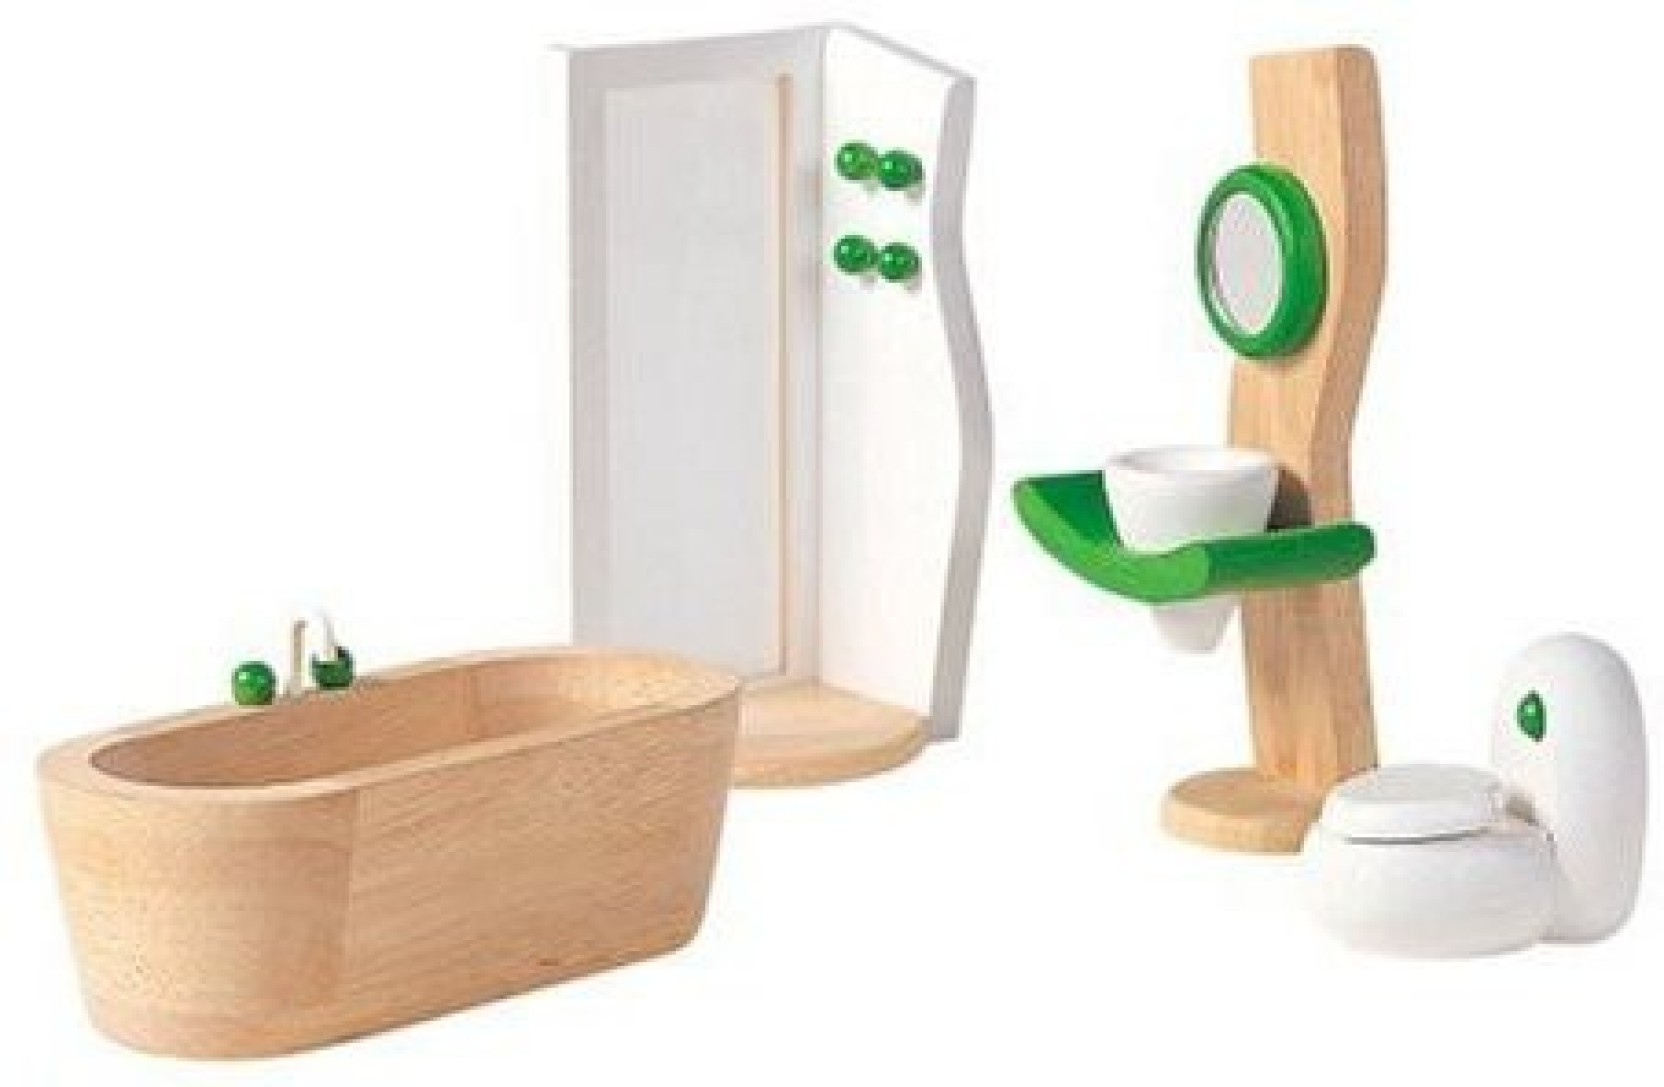 Plan toys dollhouse bathroom dcor on offer